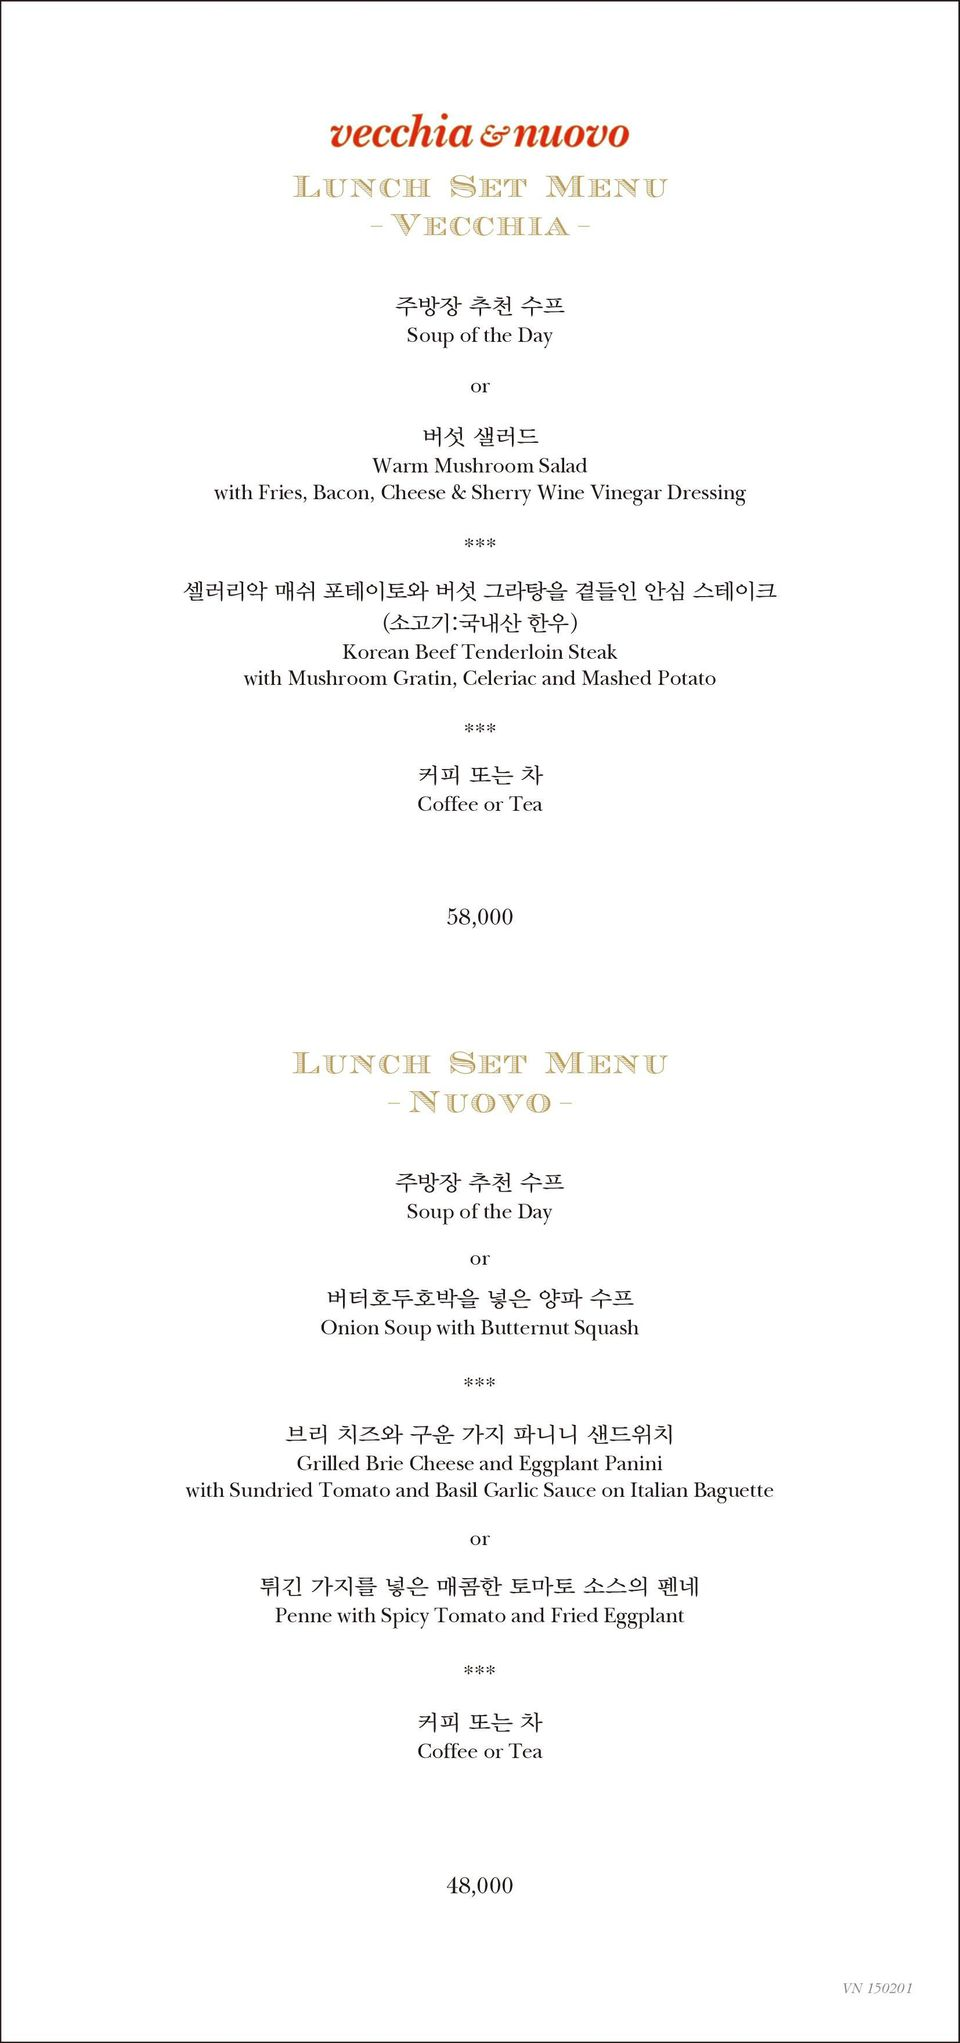 58,000 Lunch Set Menu - Nuovo - Grilled Brie Cheese and Eggplant Panini with Sundried Tomato and